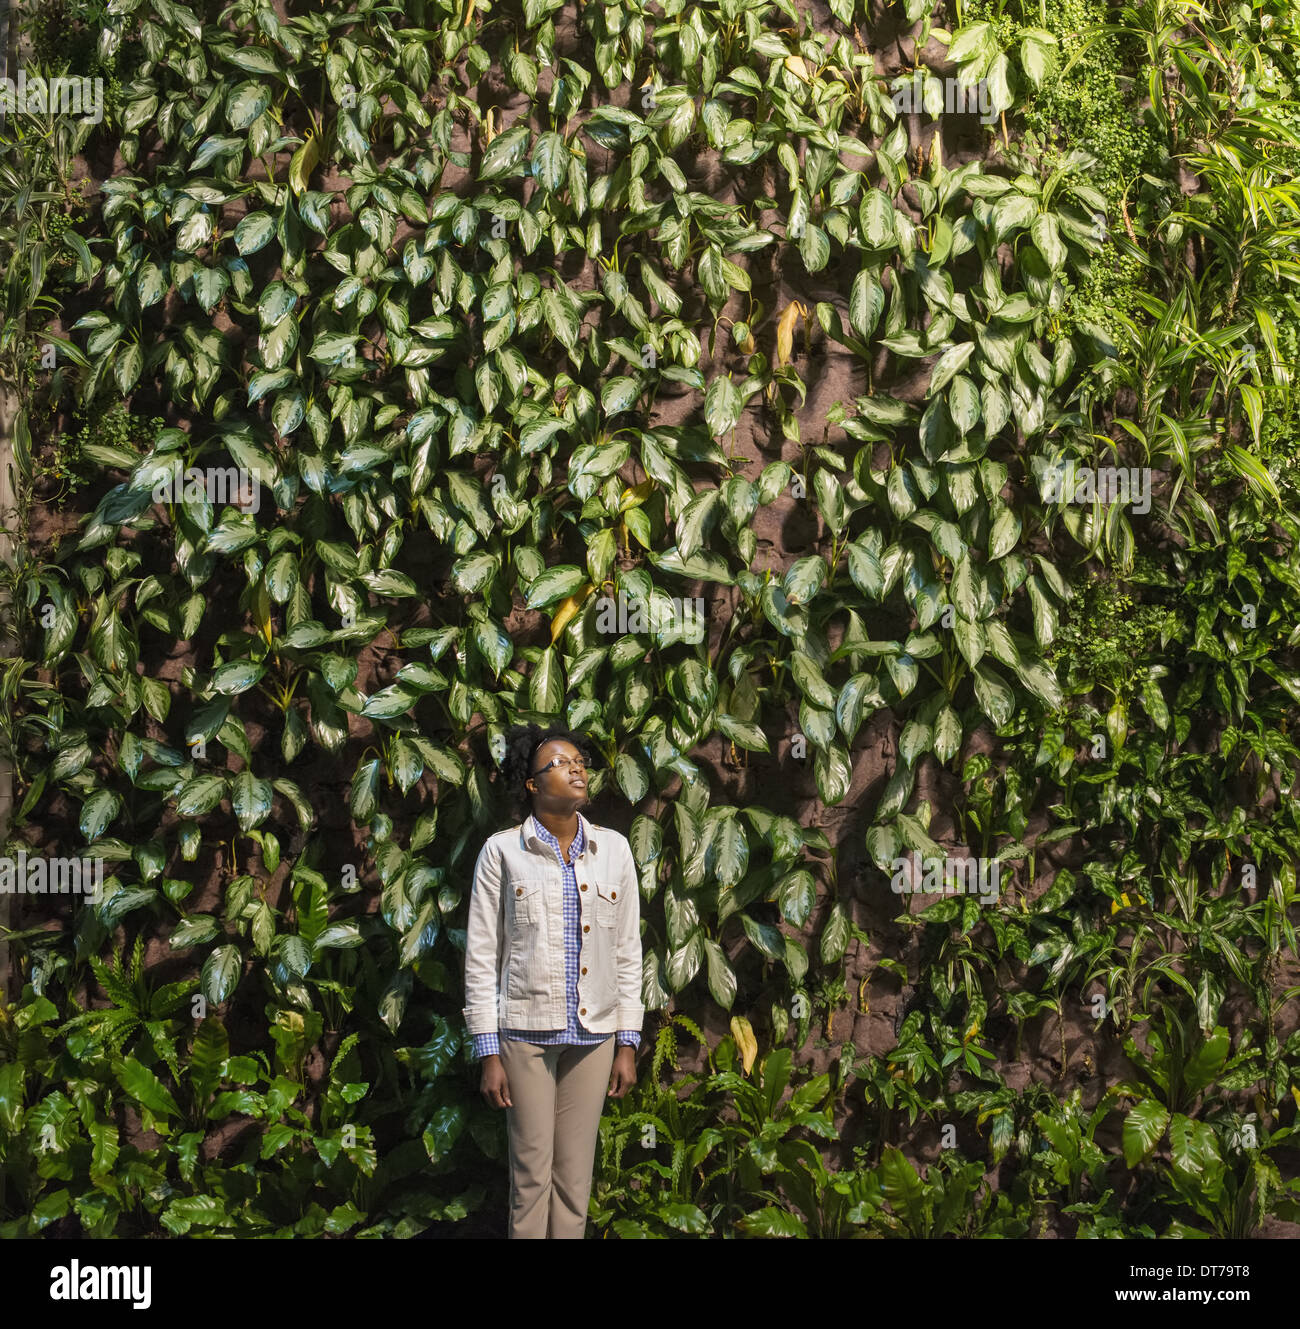 A woman looking up at a high wall covered in climbing plants and foliage. - Stock Image